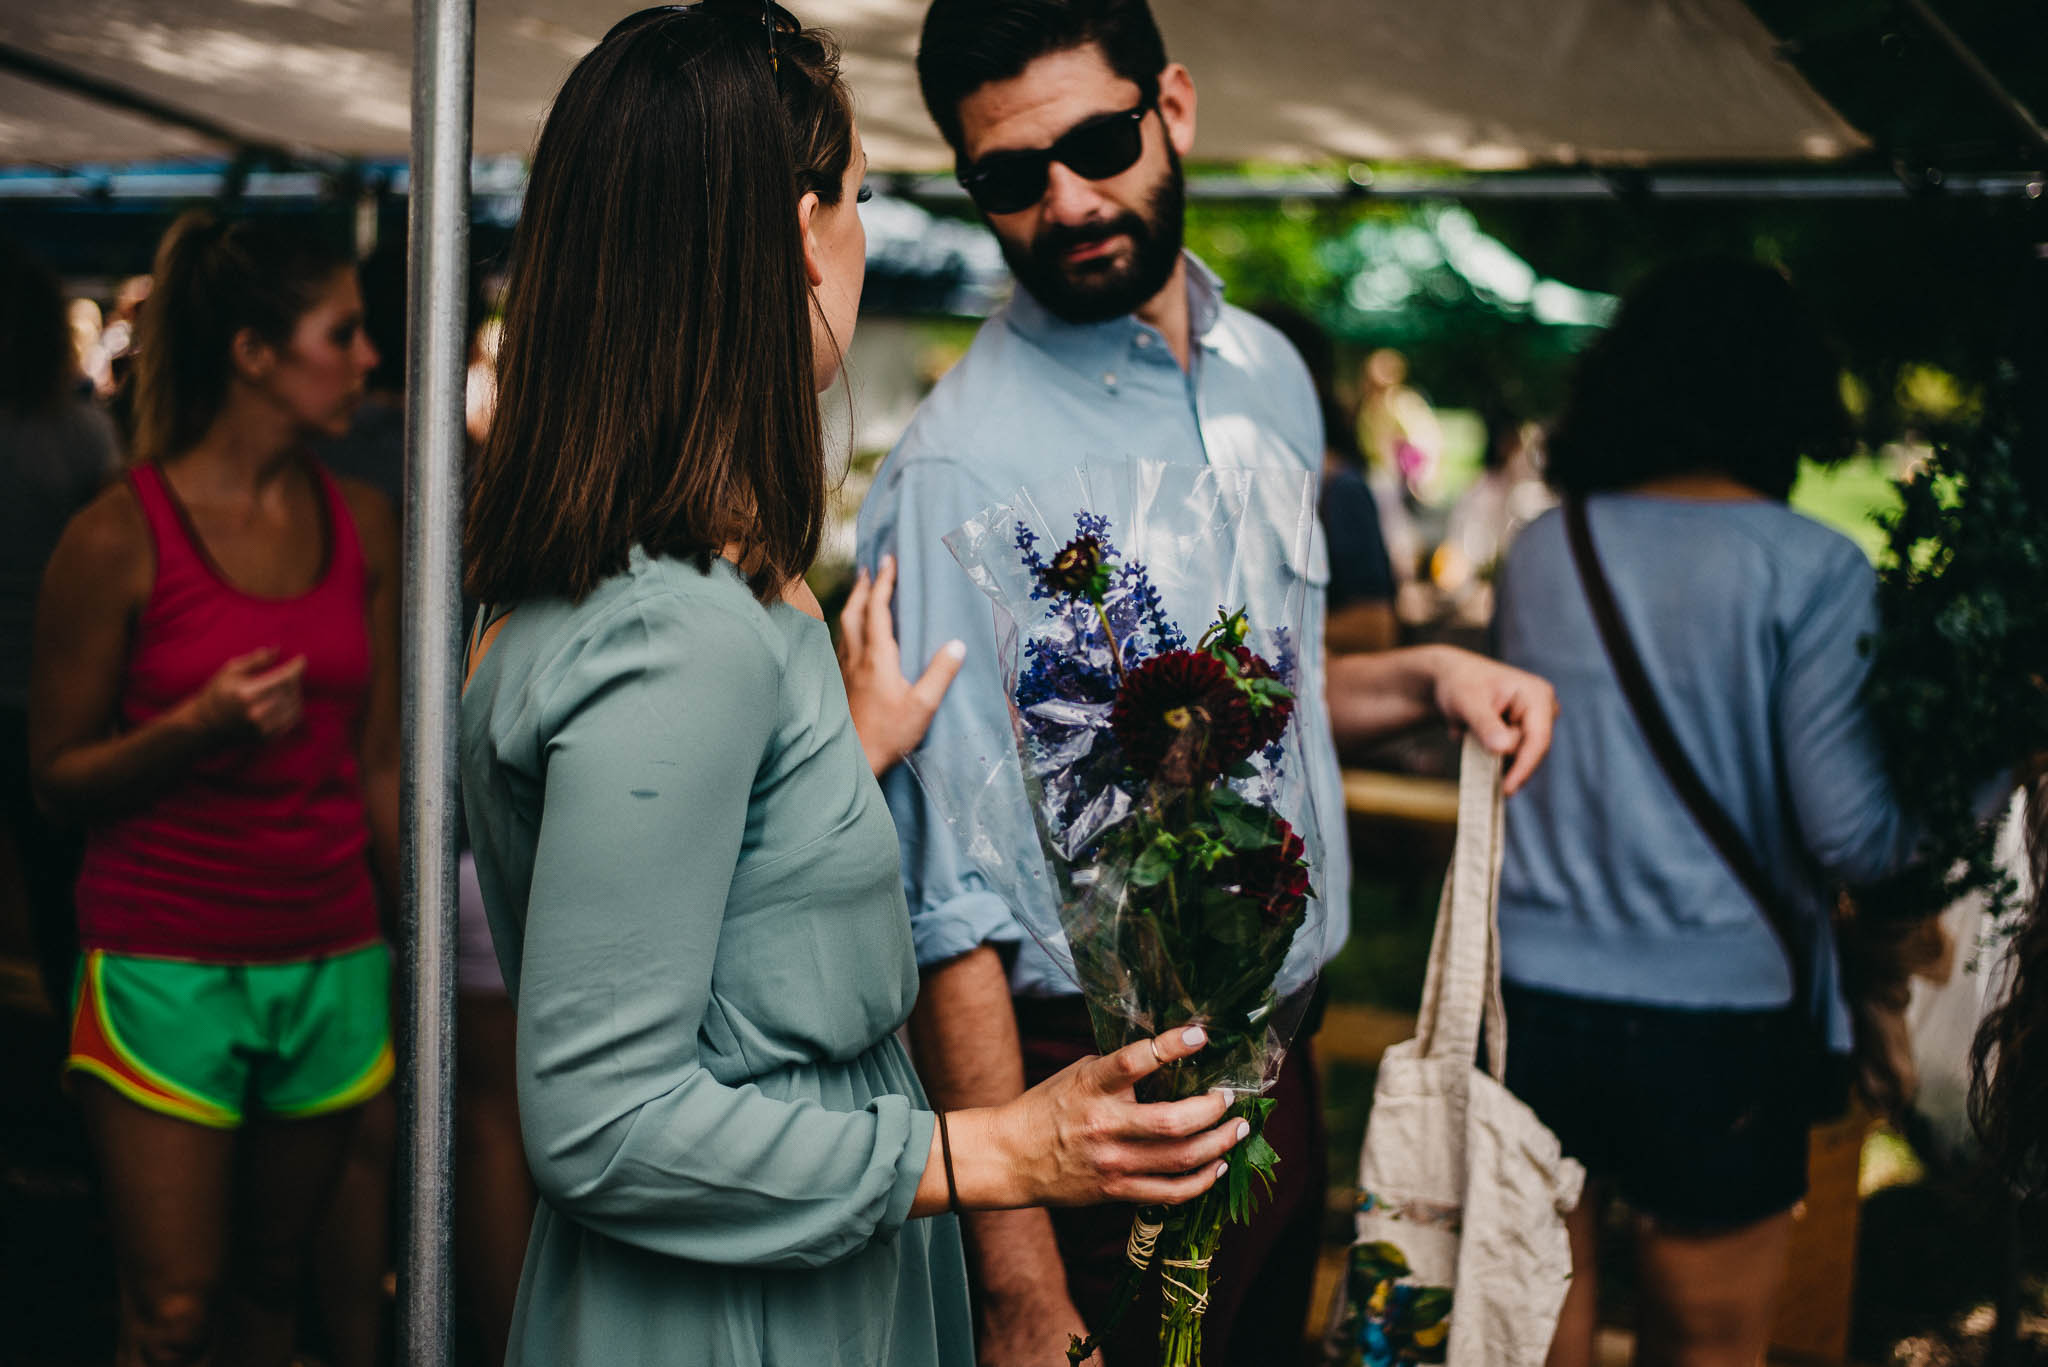 Couple buying flowers from a Chicago farmers market